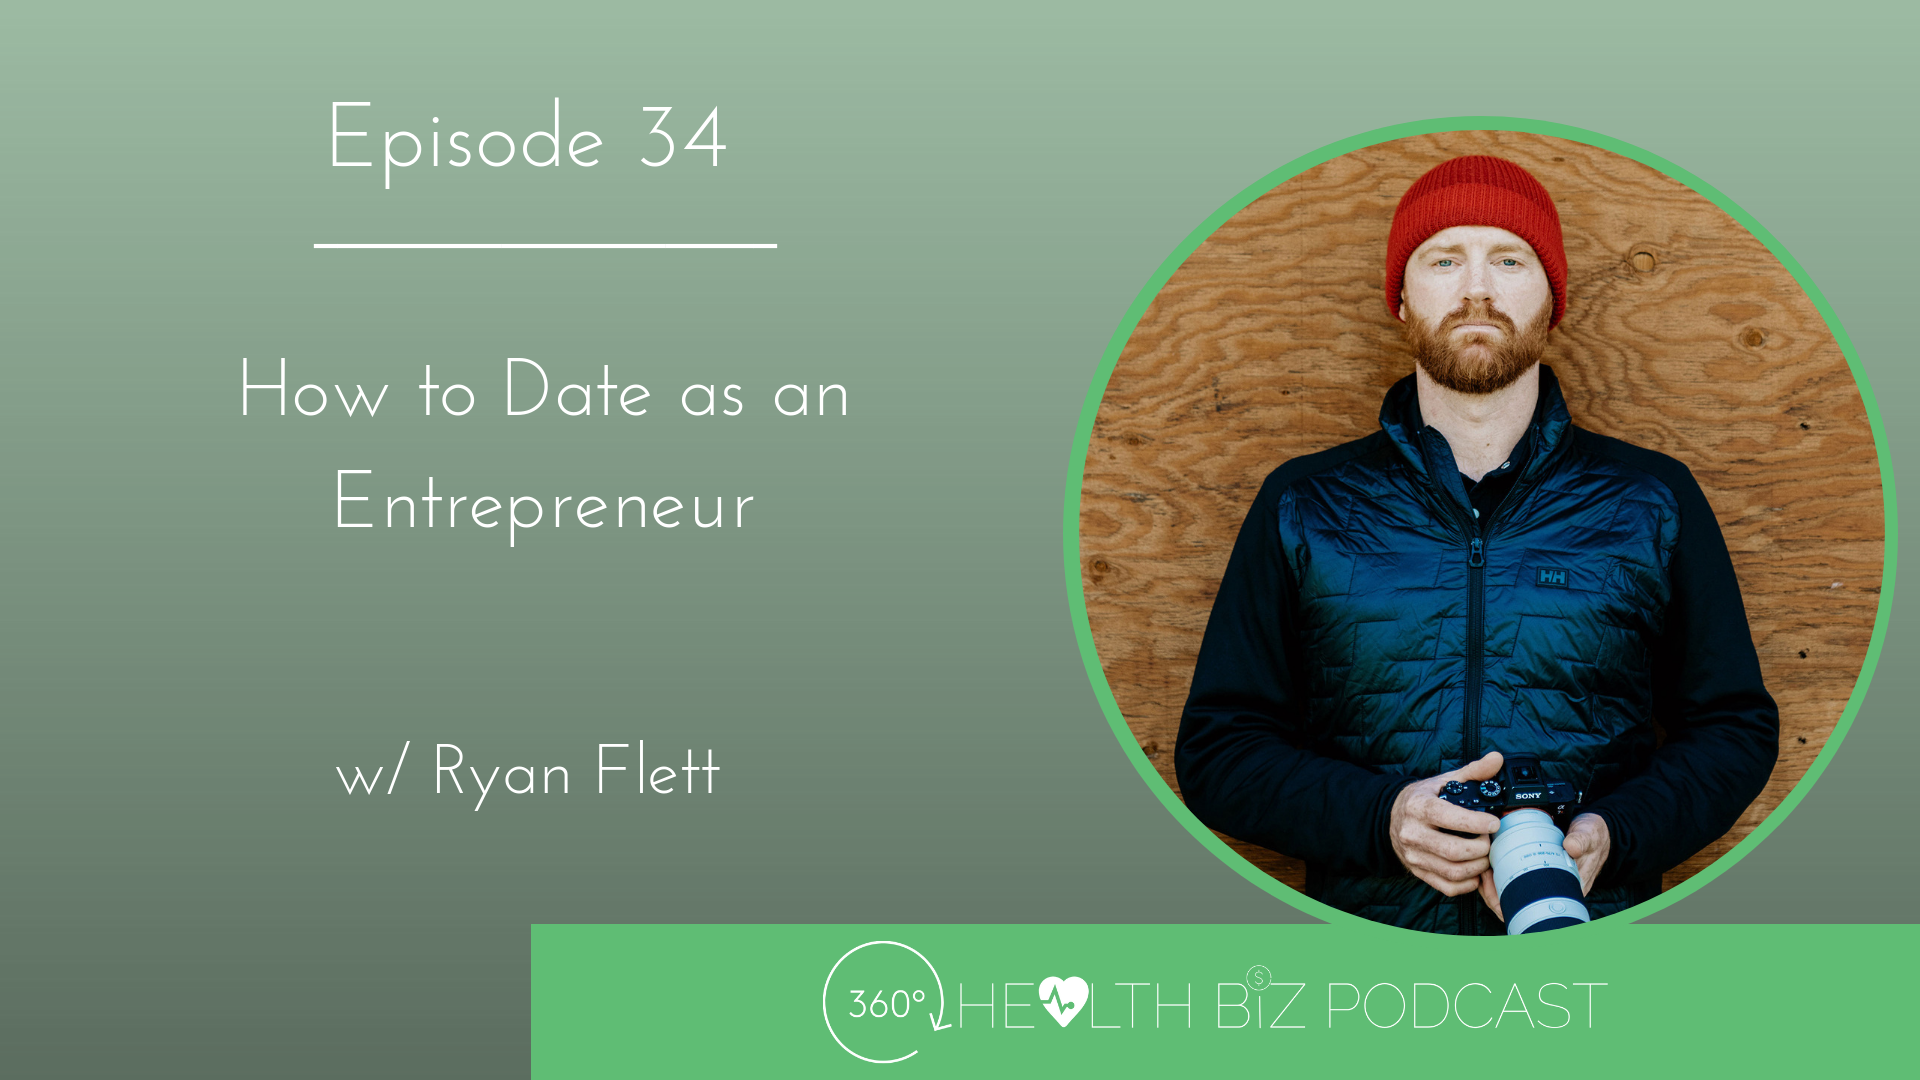 How to Date as an Entrepreneur